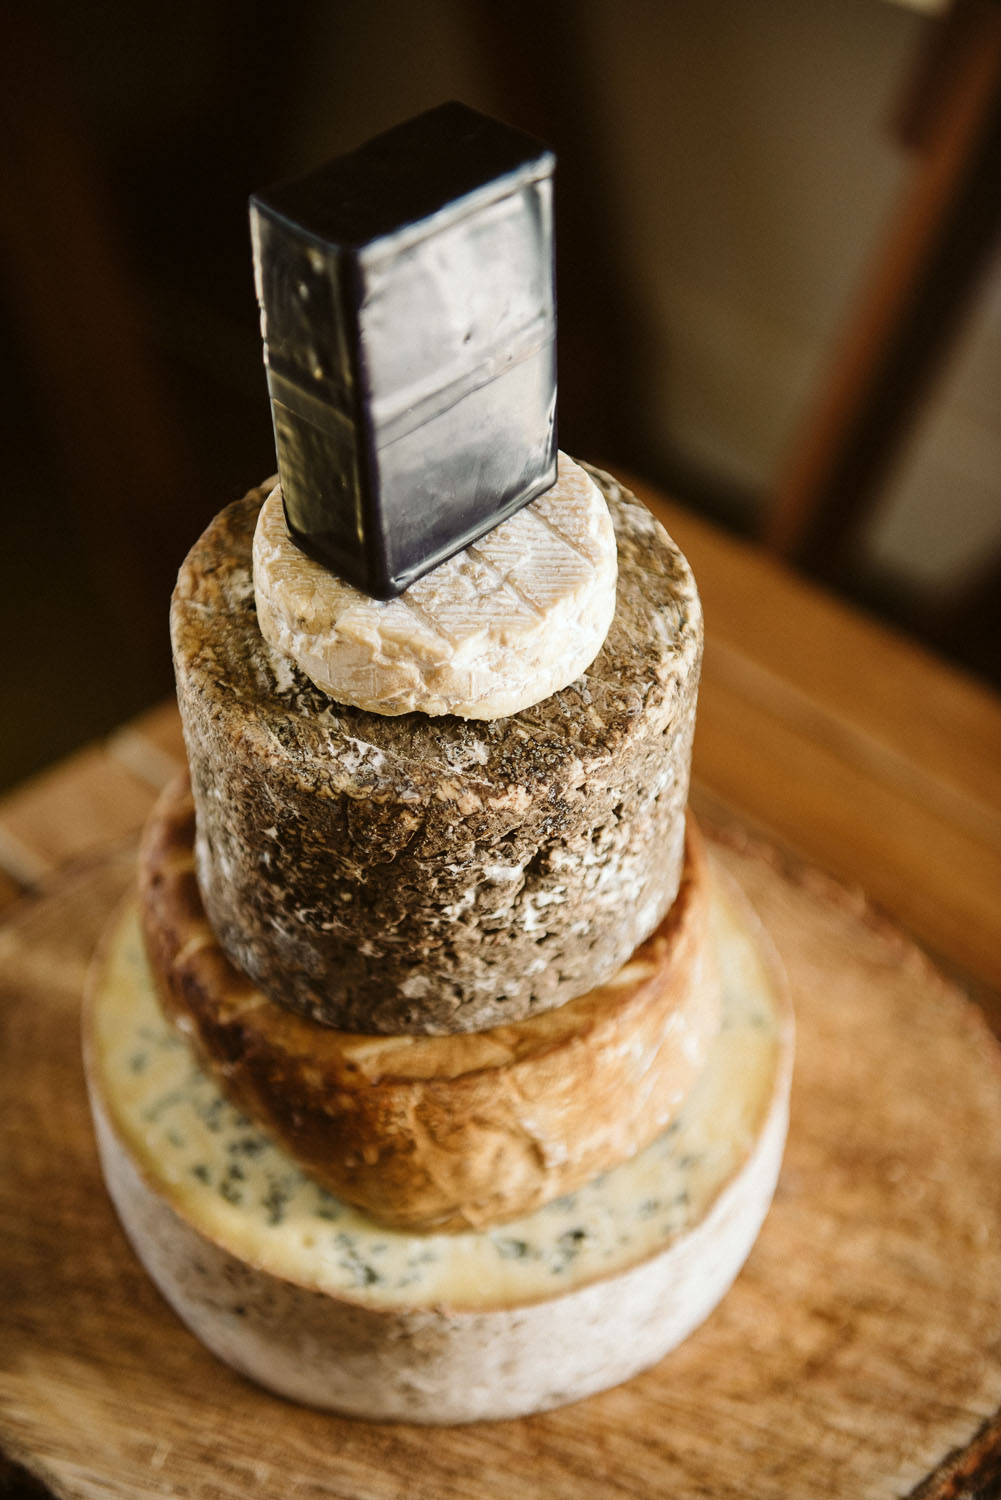 5 Well Travelled Bride Gibbston Valley Cheese Wedding Cakes Lake Wanaka.jpg